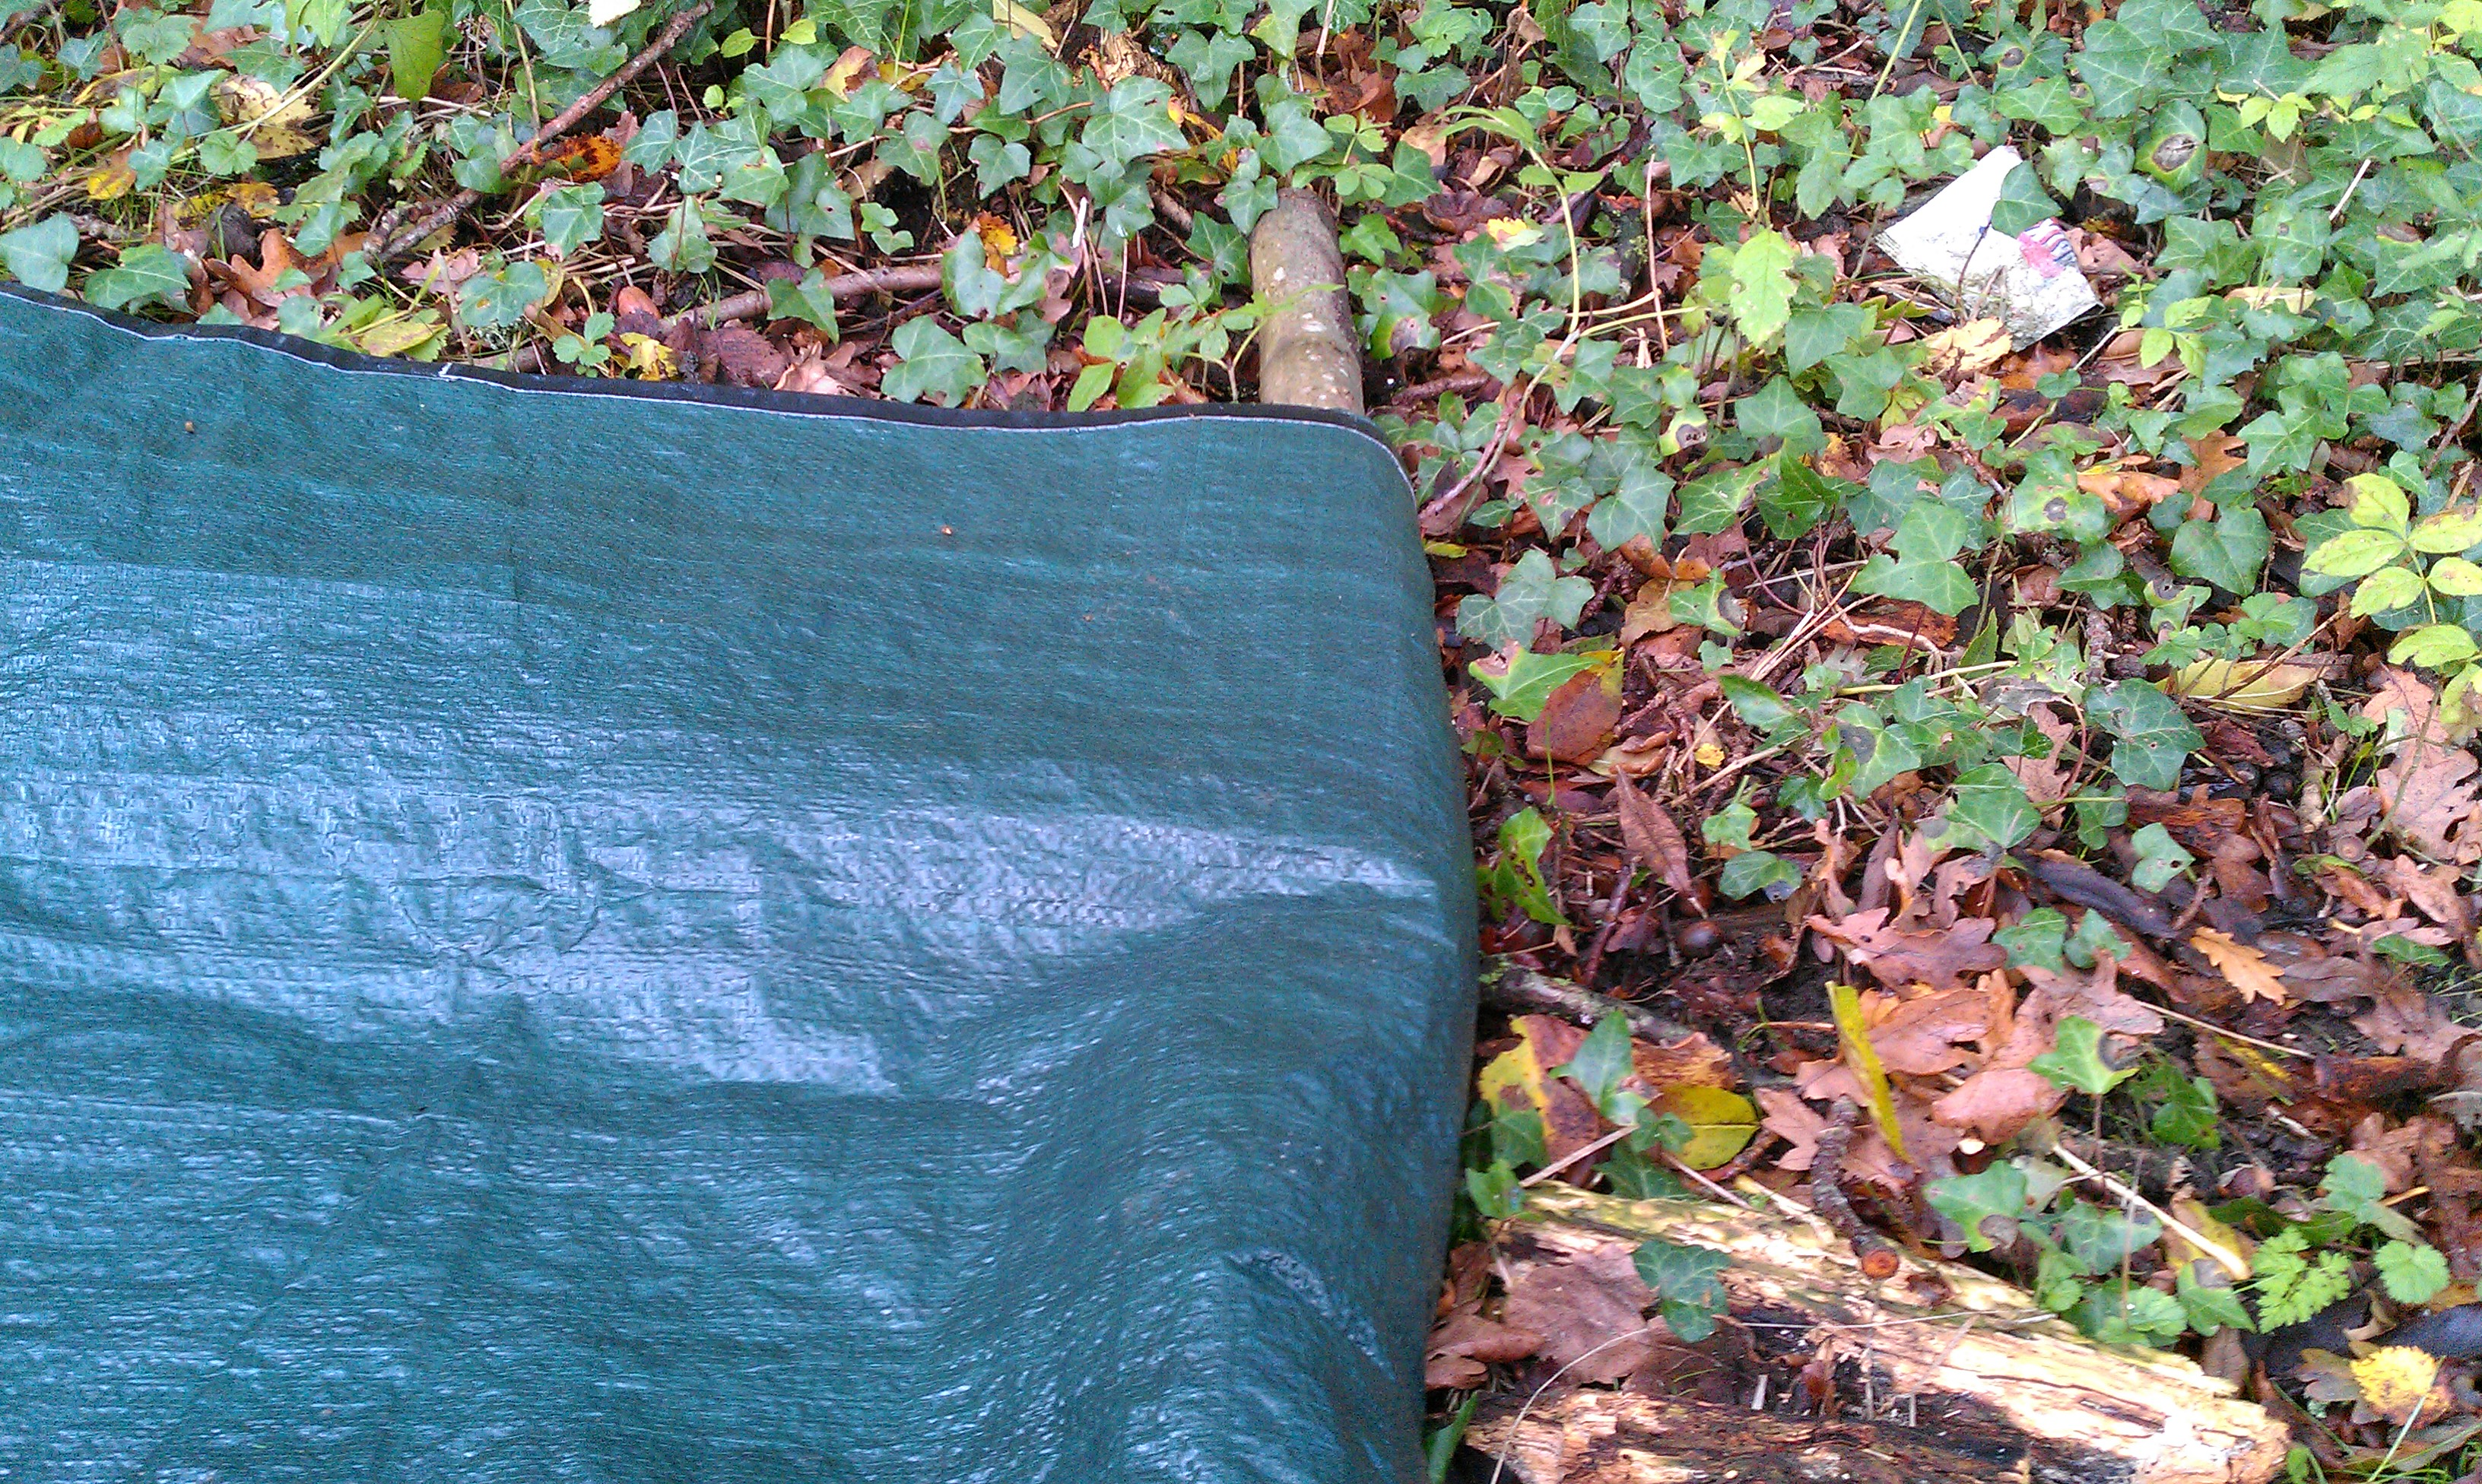 Picture of Roll Sticks in Tarpaulin